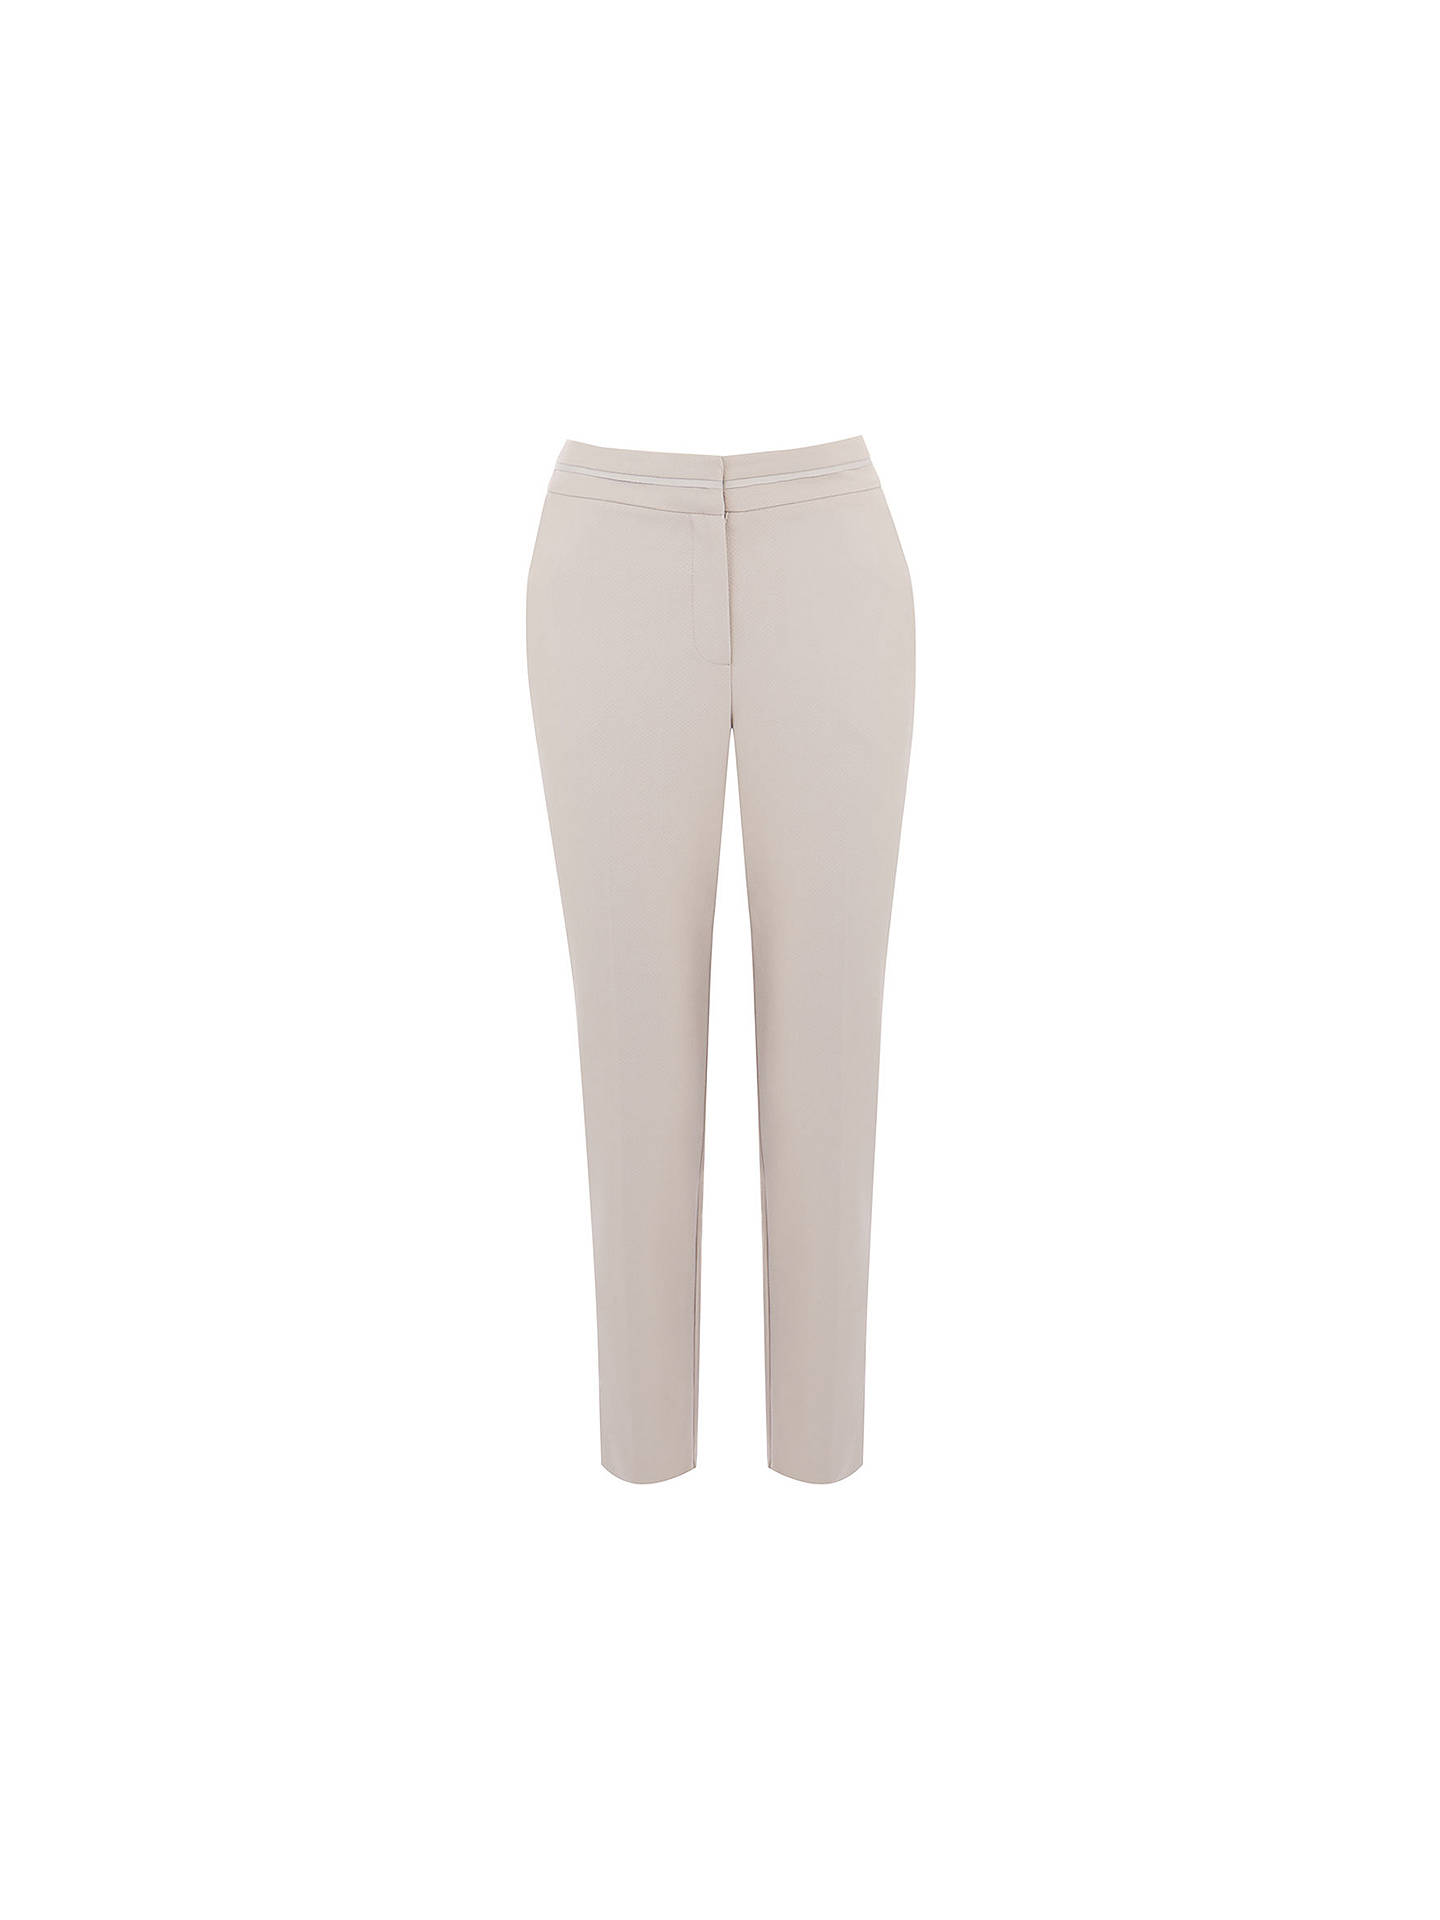 ec6dec05fe83 ... Buy Oasis Camila Split Detail Trousers, Mid Grey, 8 Online at  johnlewis.com ...